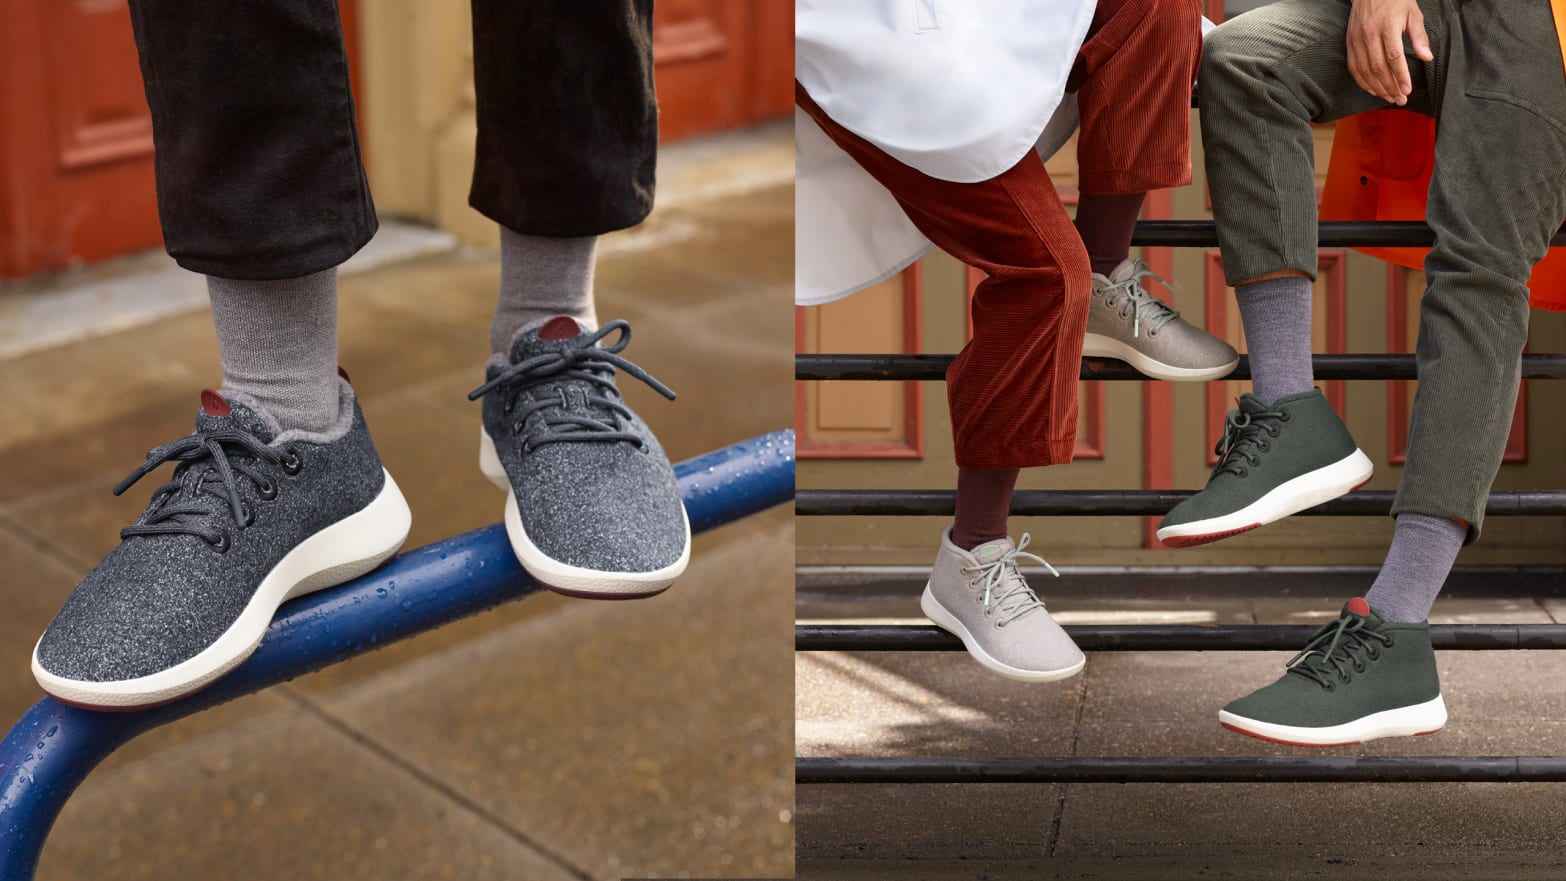 Allbirds Launches the Mizzle Collection, a New Take on Water-Resistant Shoes